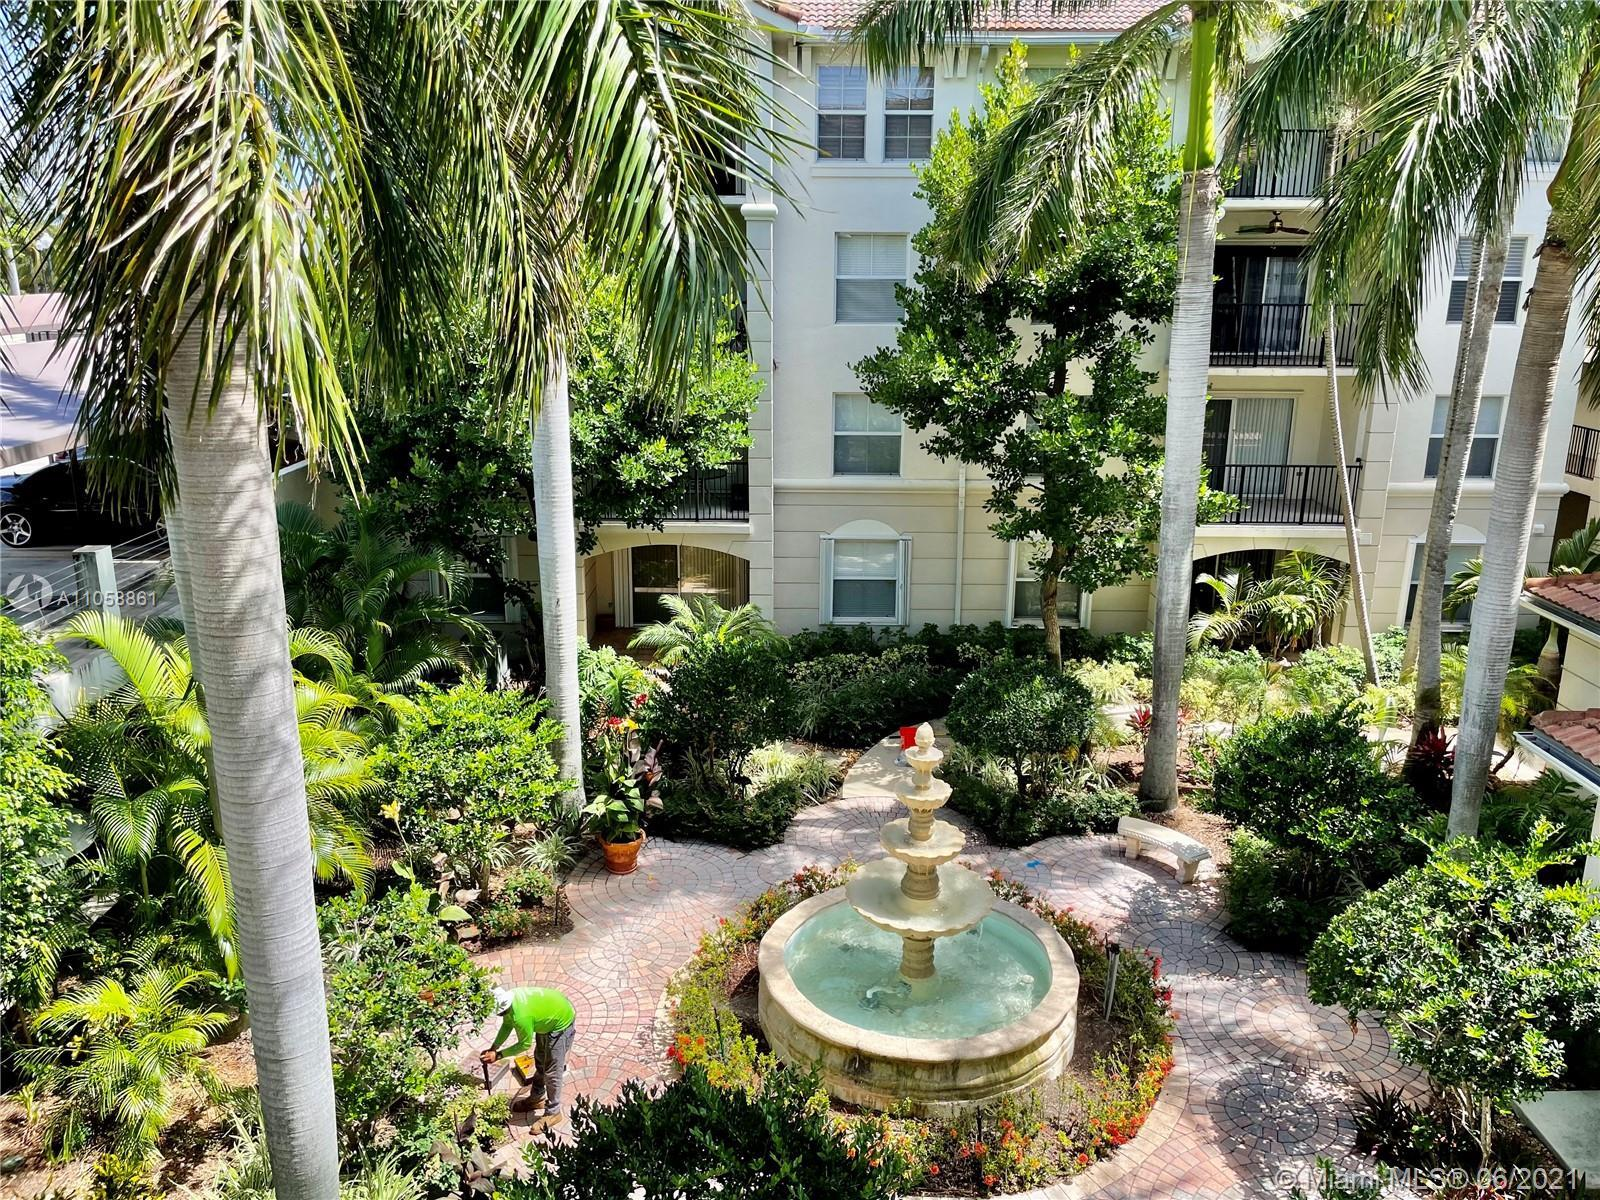 Welcome to unit 2308. This 3 bedroom 2 bathroom condo offers resort style living right on the intrac